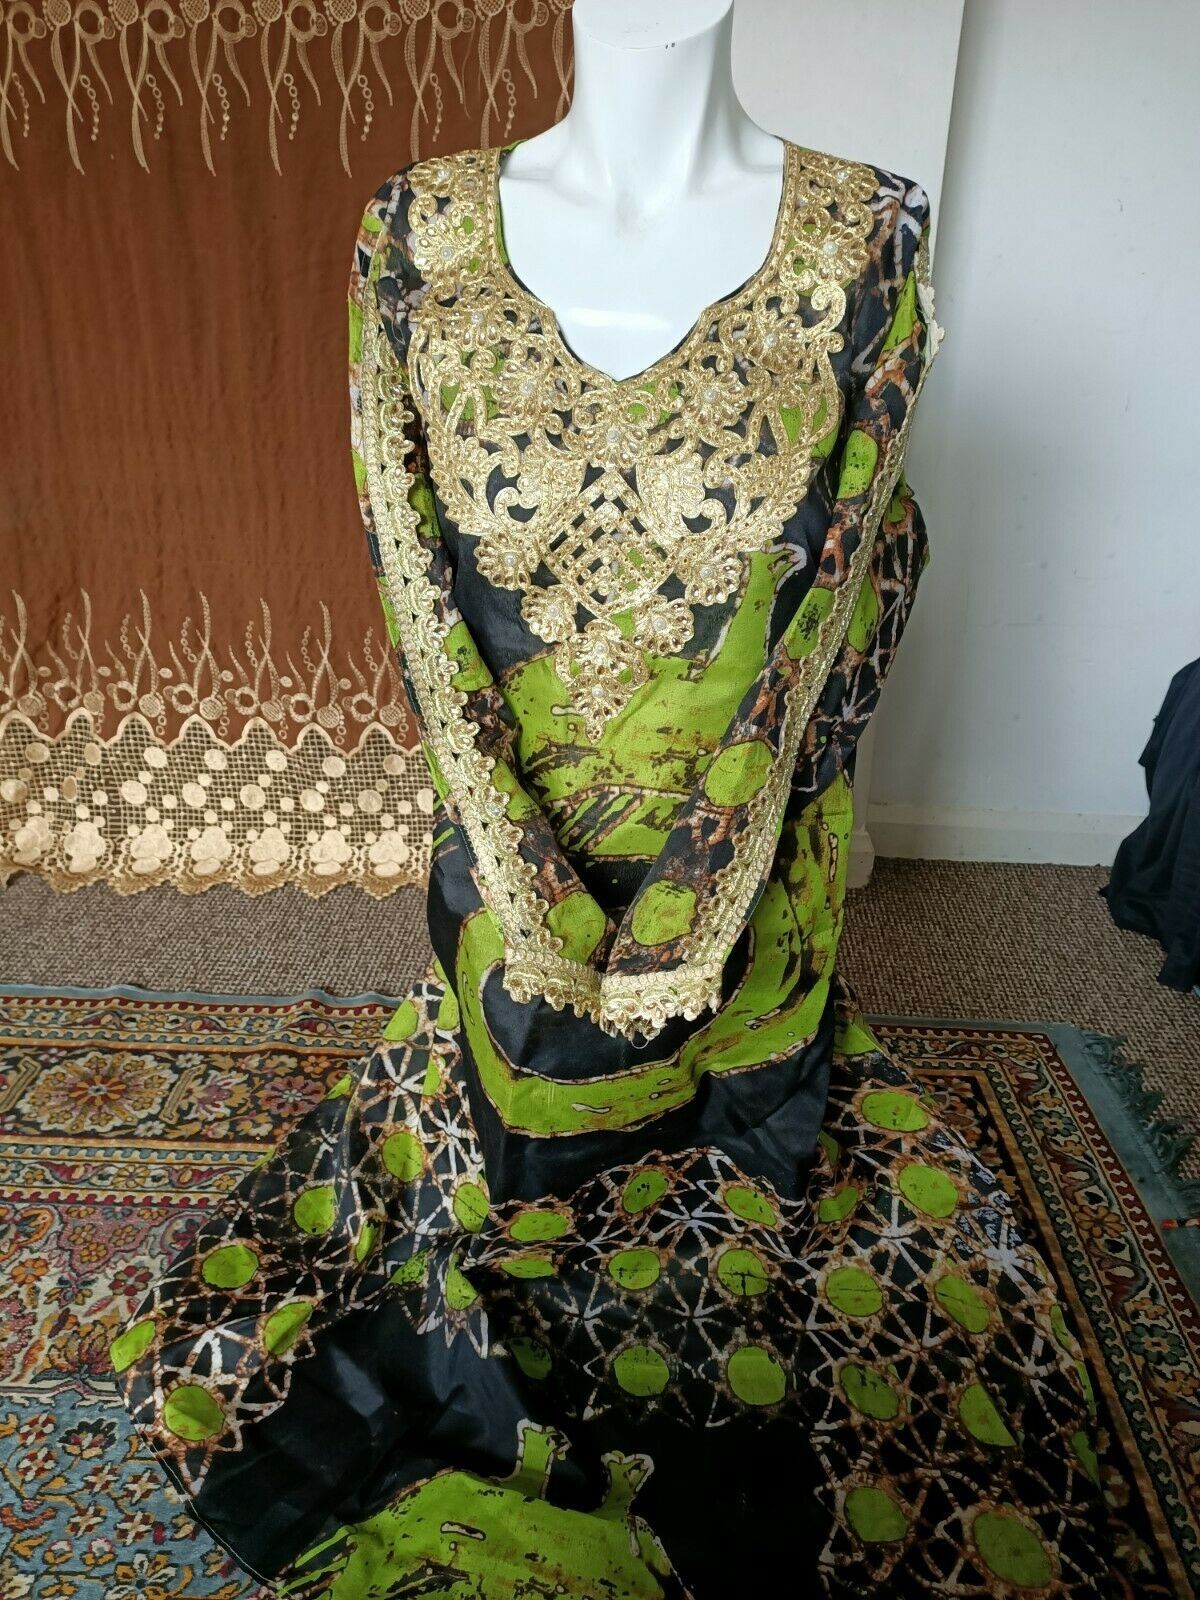 Ladies African long dress with gold details free Size fit chest up to 44Rins